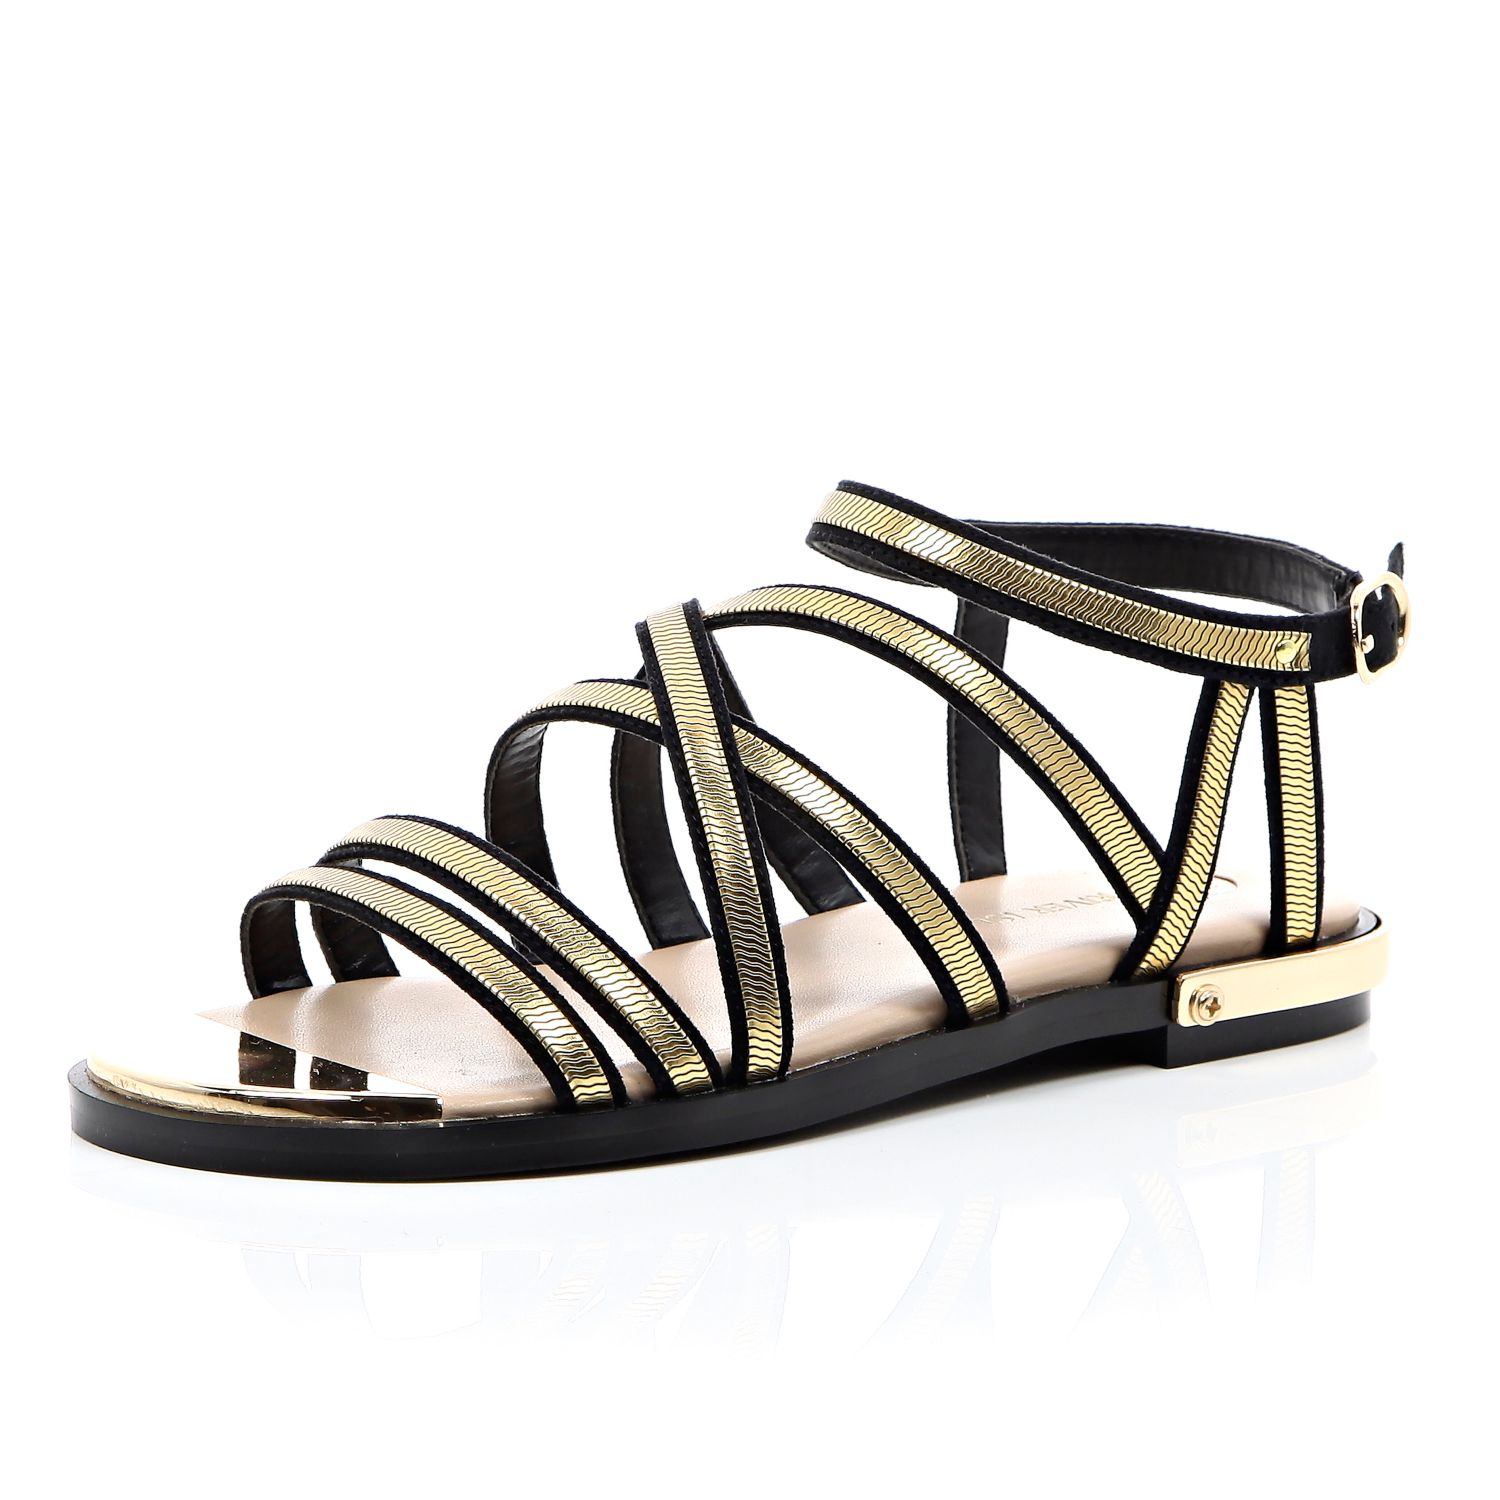 ac56a98820fa River Island Black And Gold Strappy Gladiator Sandals in Metallic - Lyst